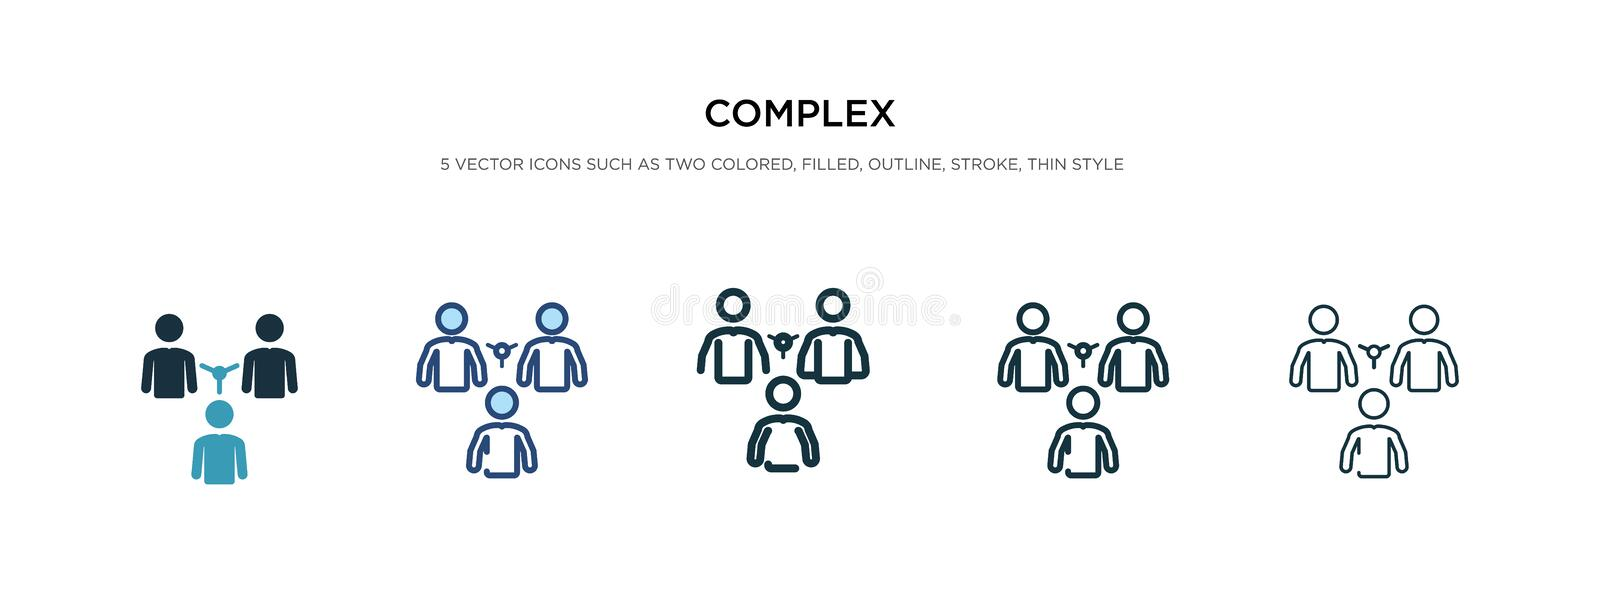 Complex icon in different style vector illustration. two colored and black complex vector icons designed in filled, outline, line stock illustration